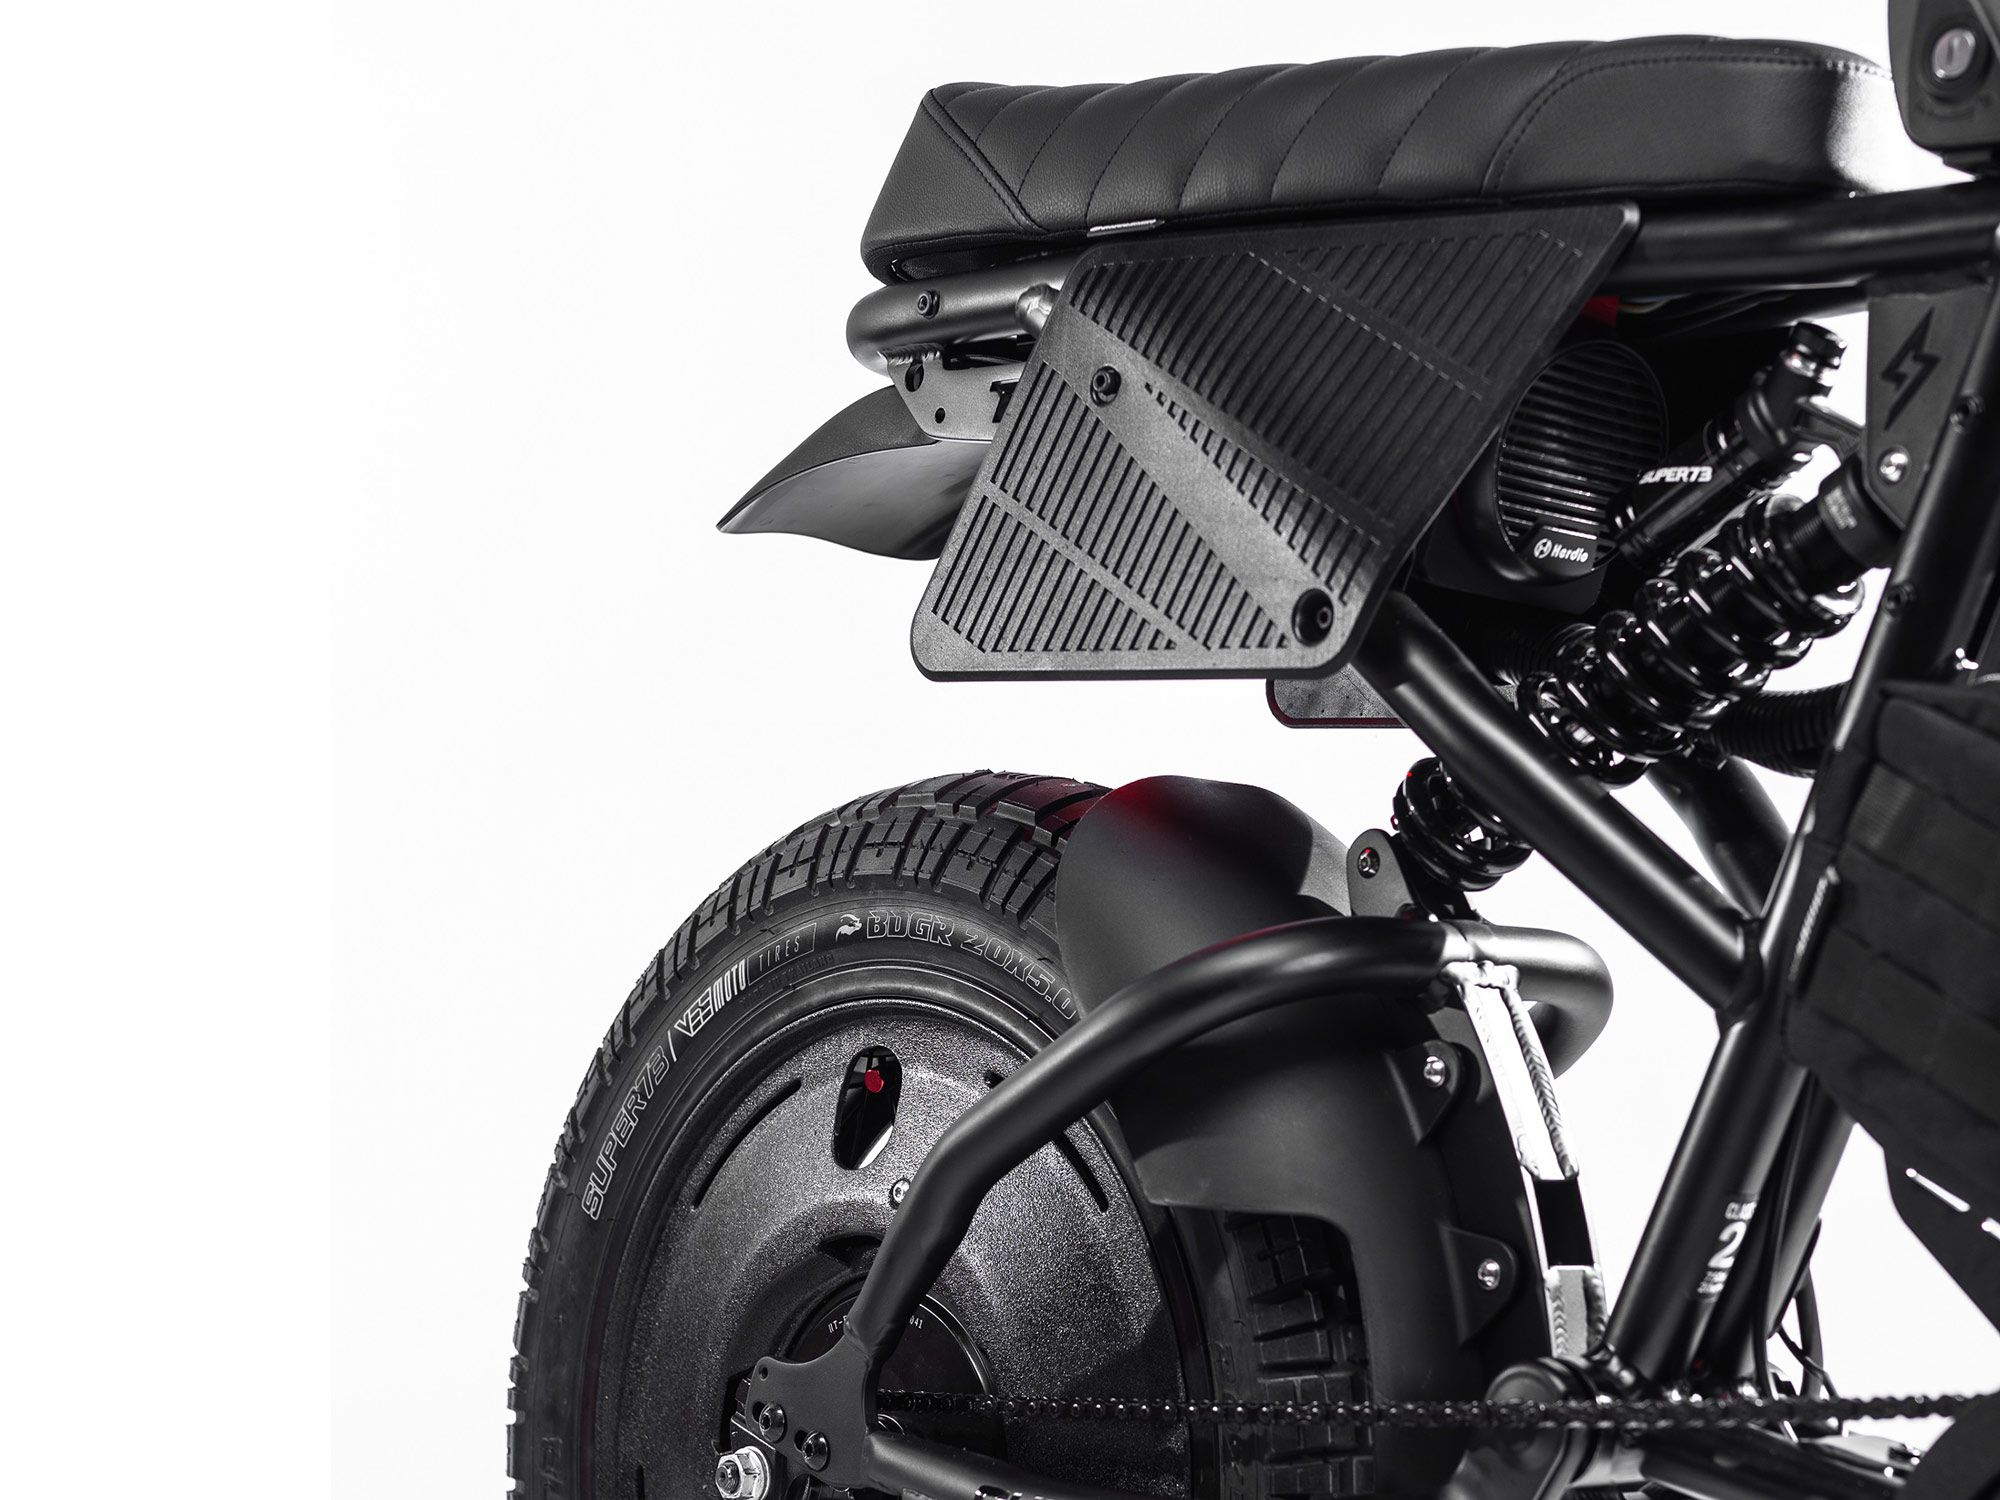 The rear looks battle ready thanks to 3-D-printed covers and number plates. The custom saddle is courtesy of Saddlemen.